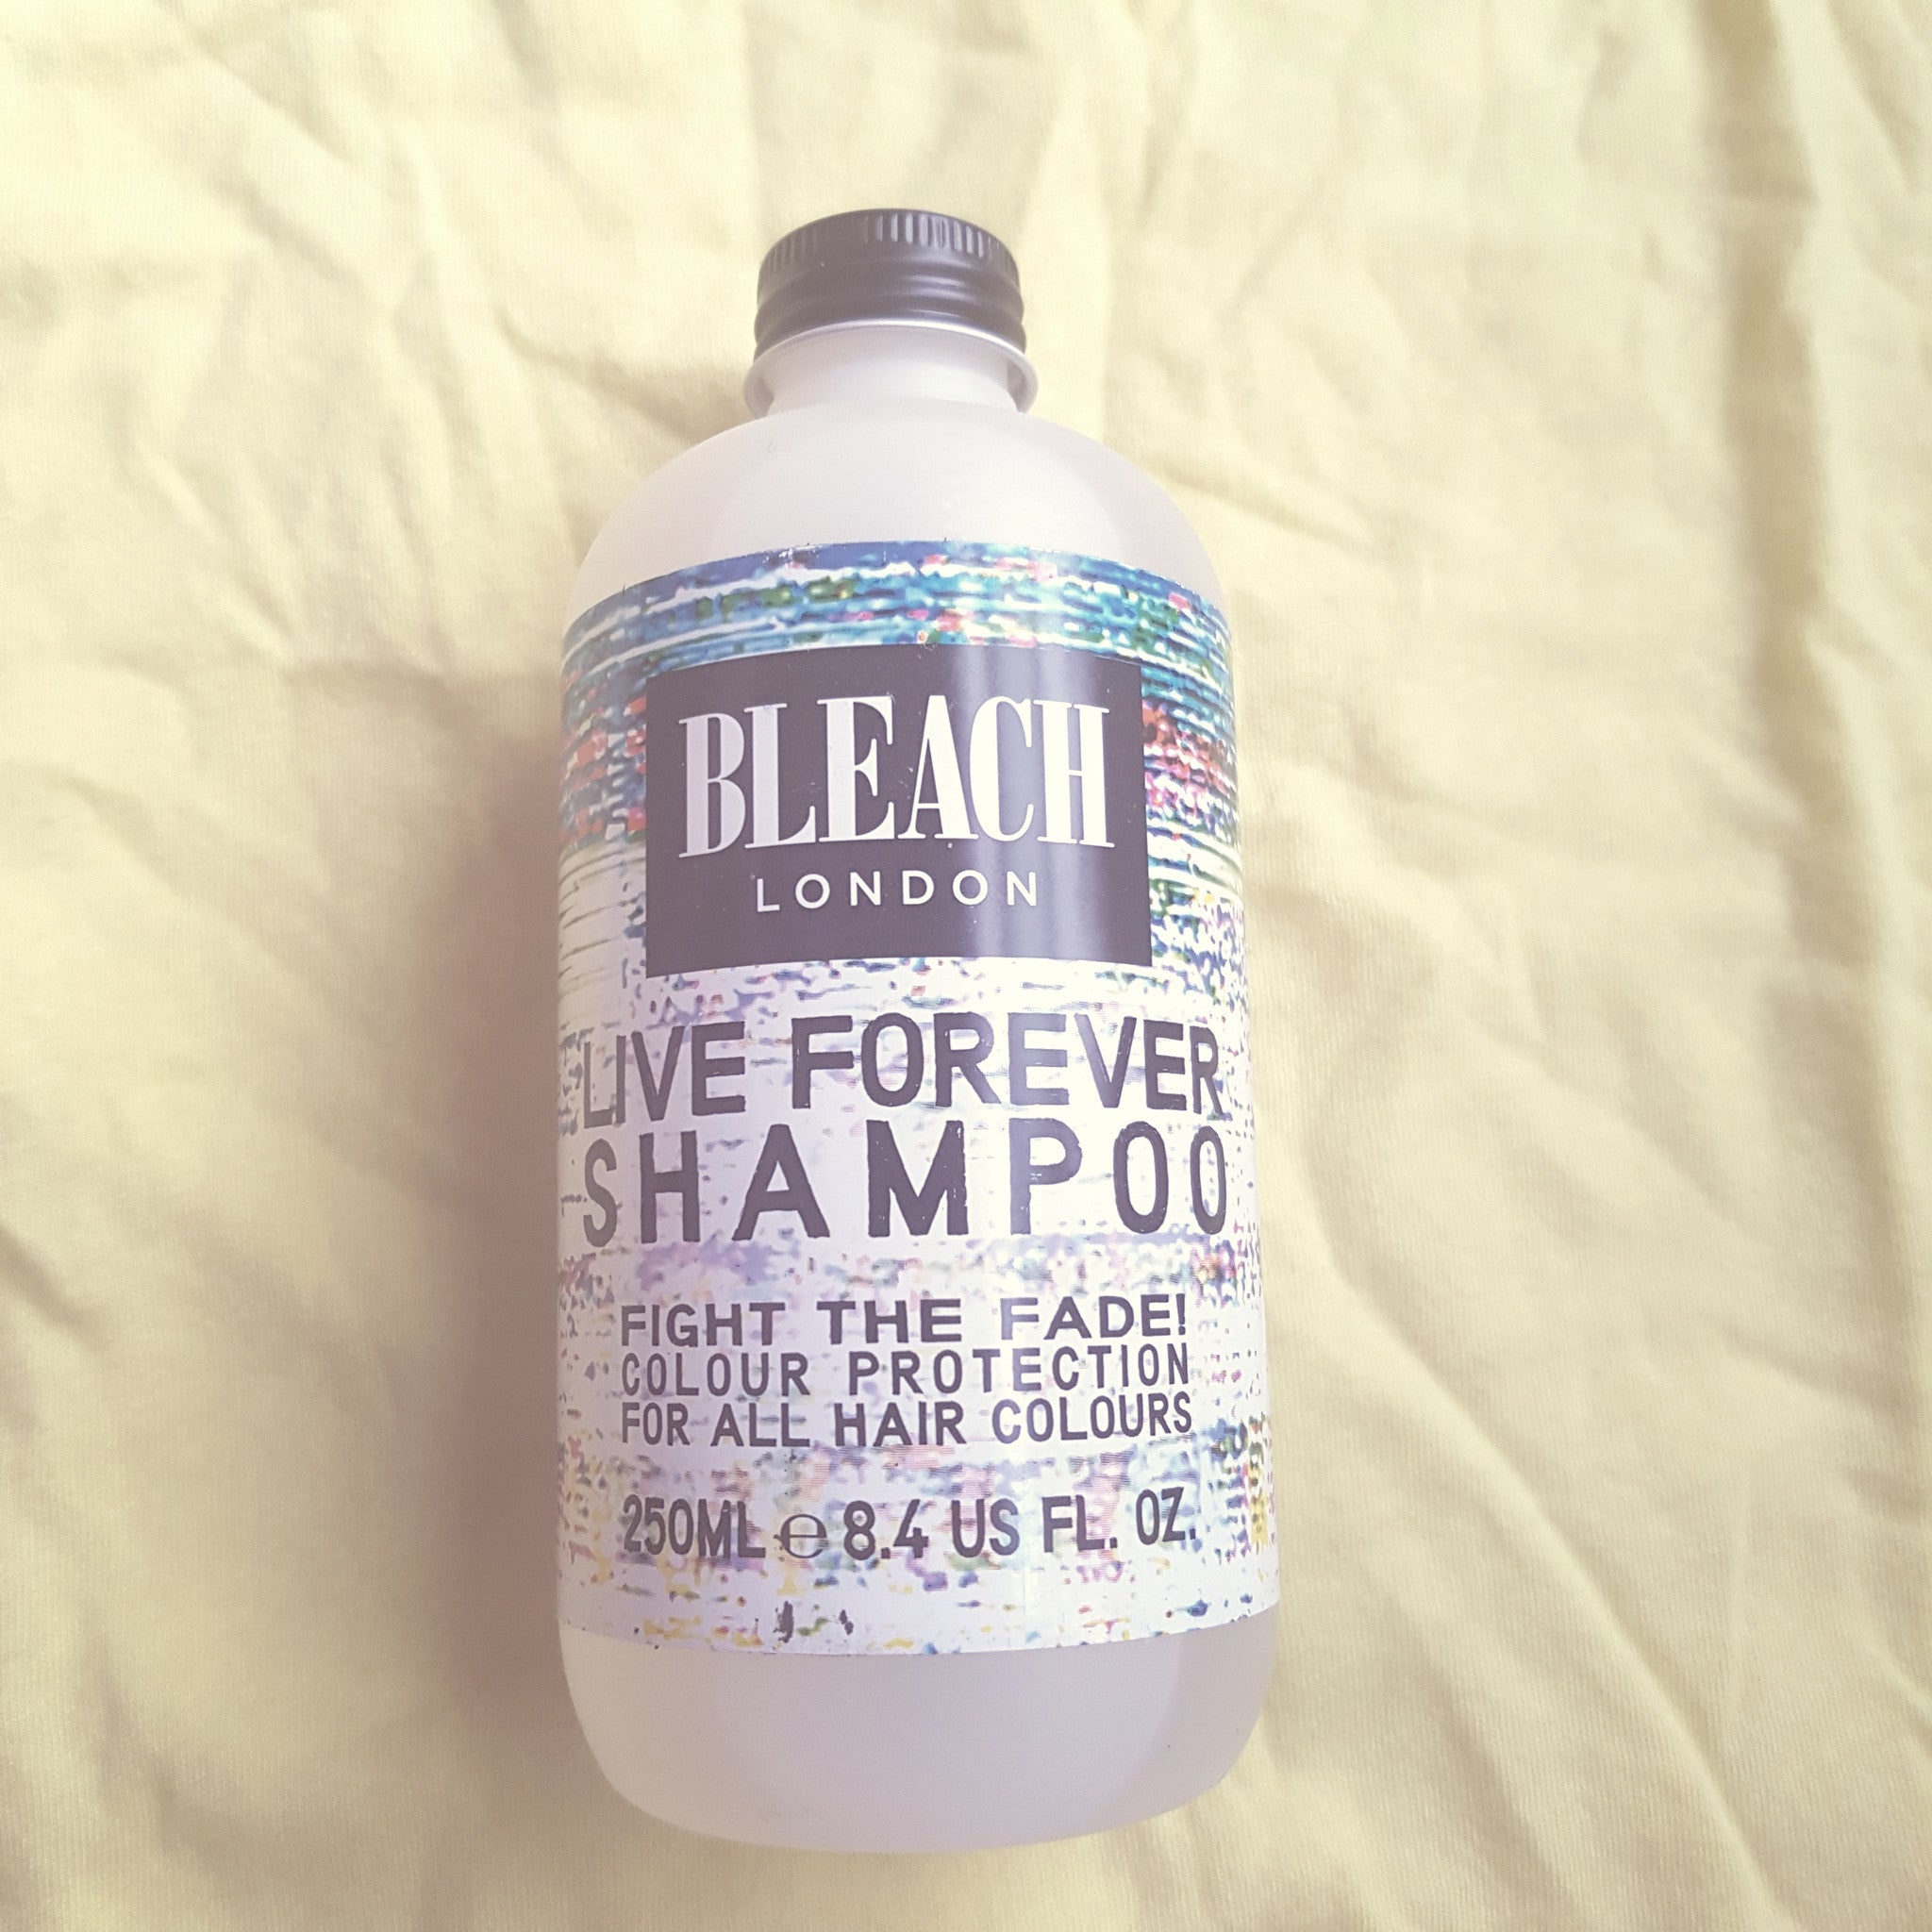 Bleach London Live Forever Shampoo or Conditioner